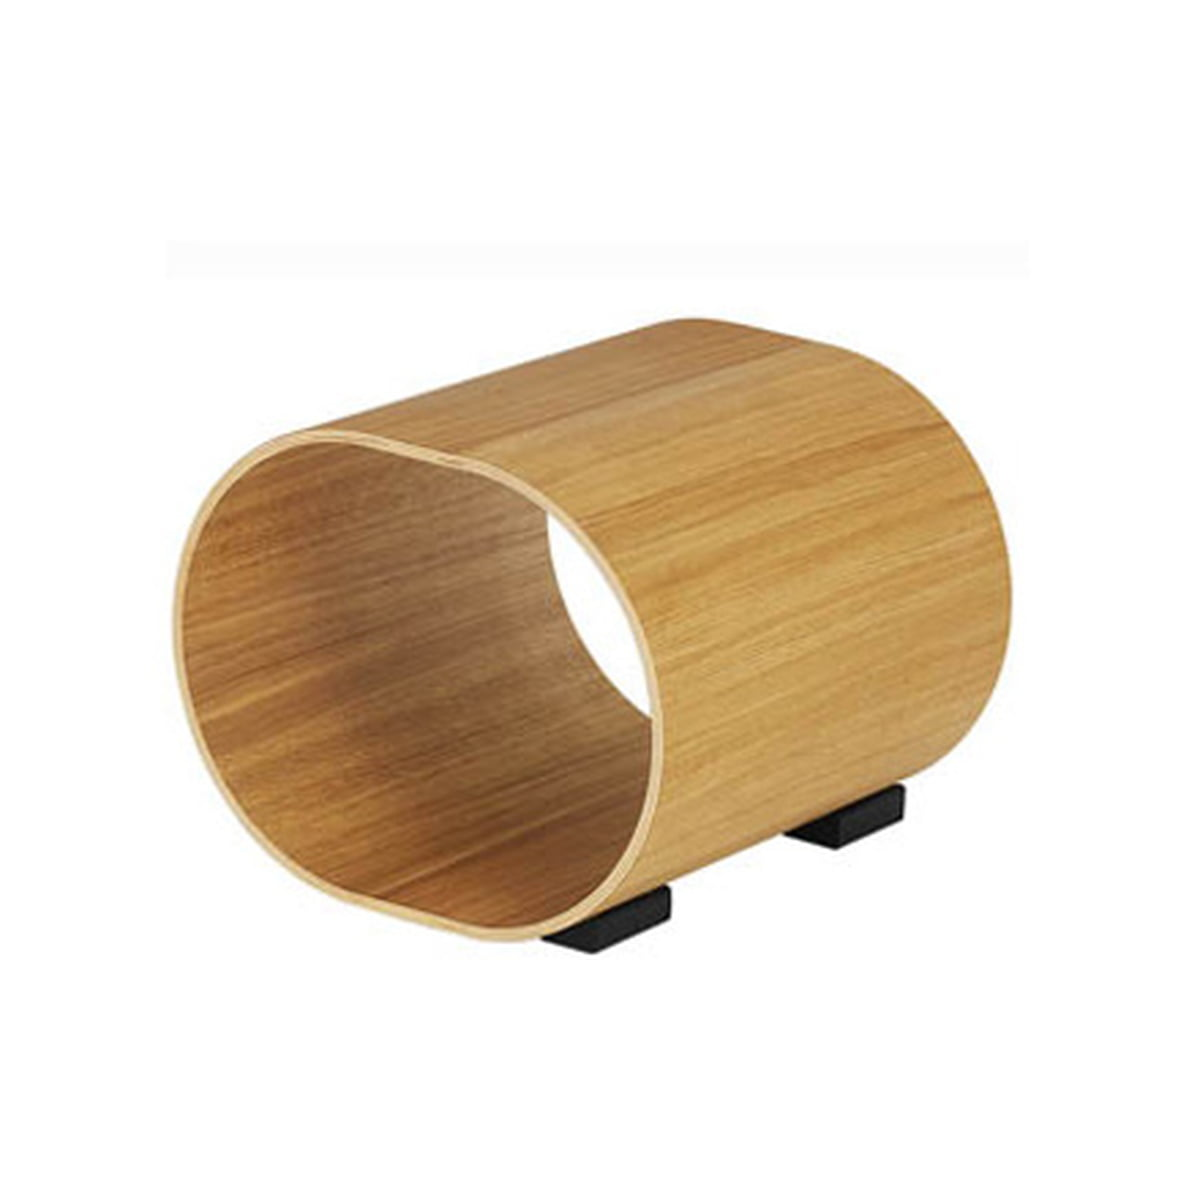 Log Seat Series By Swedese In The Design Shop